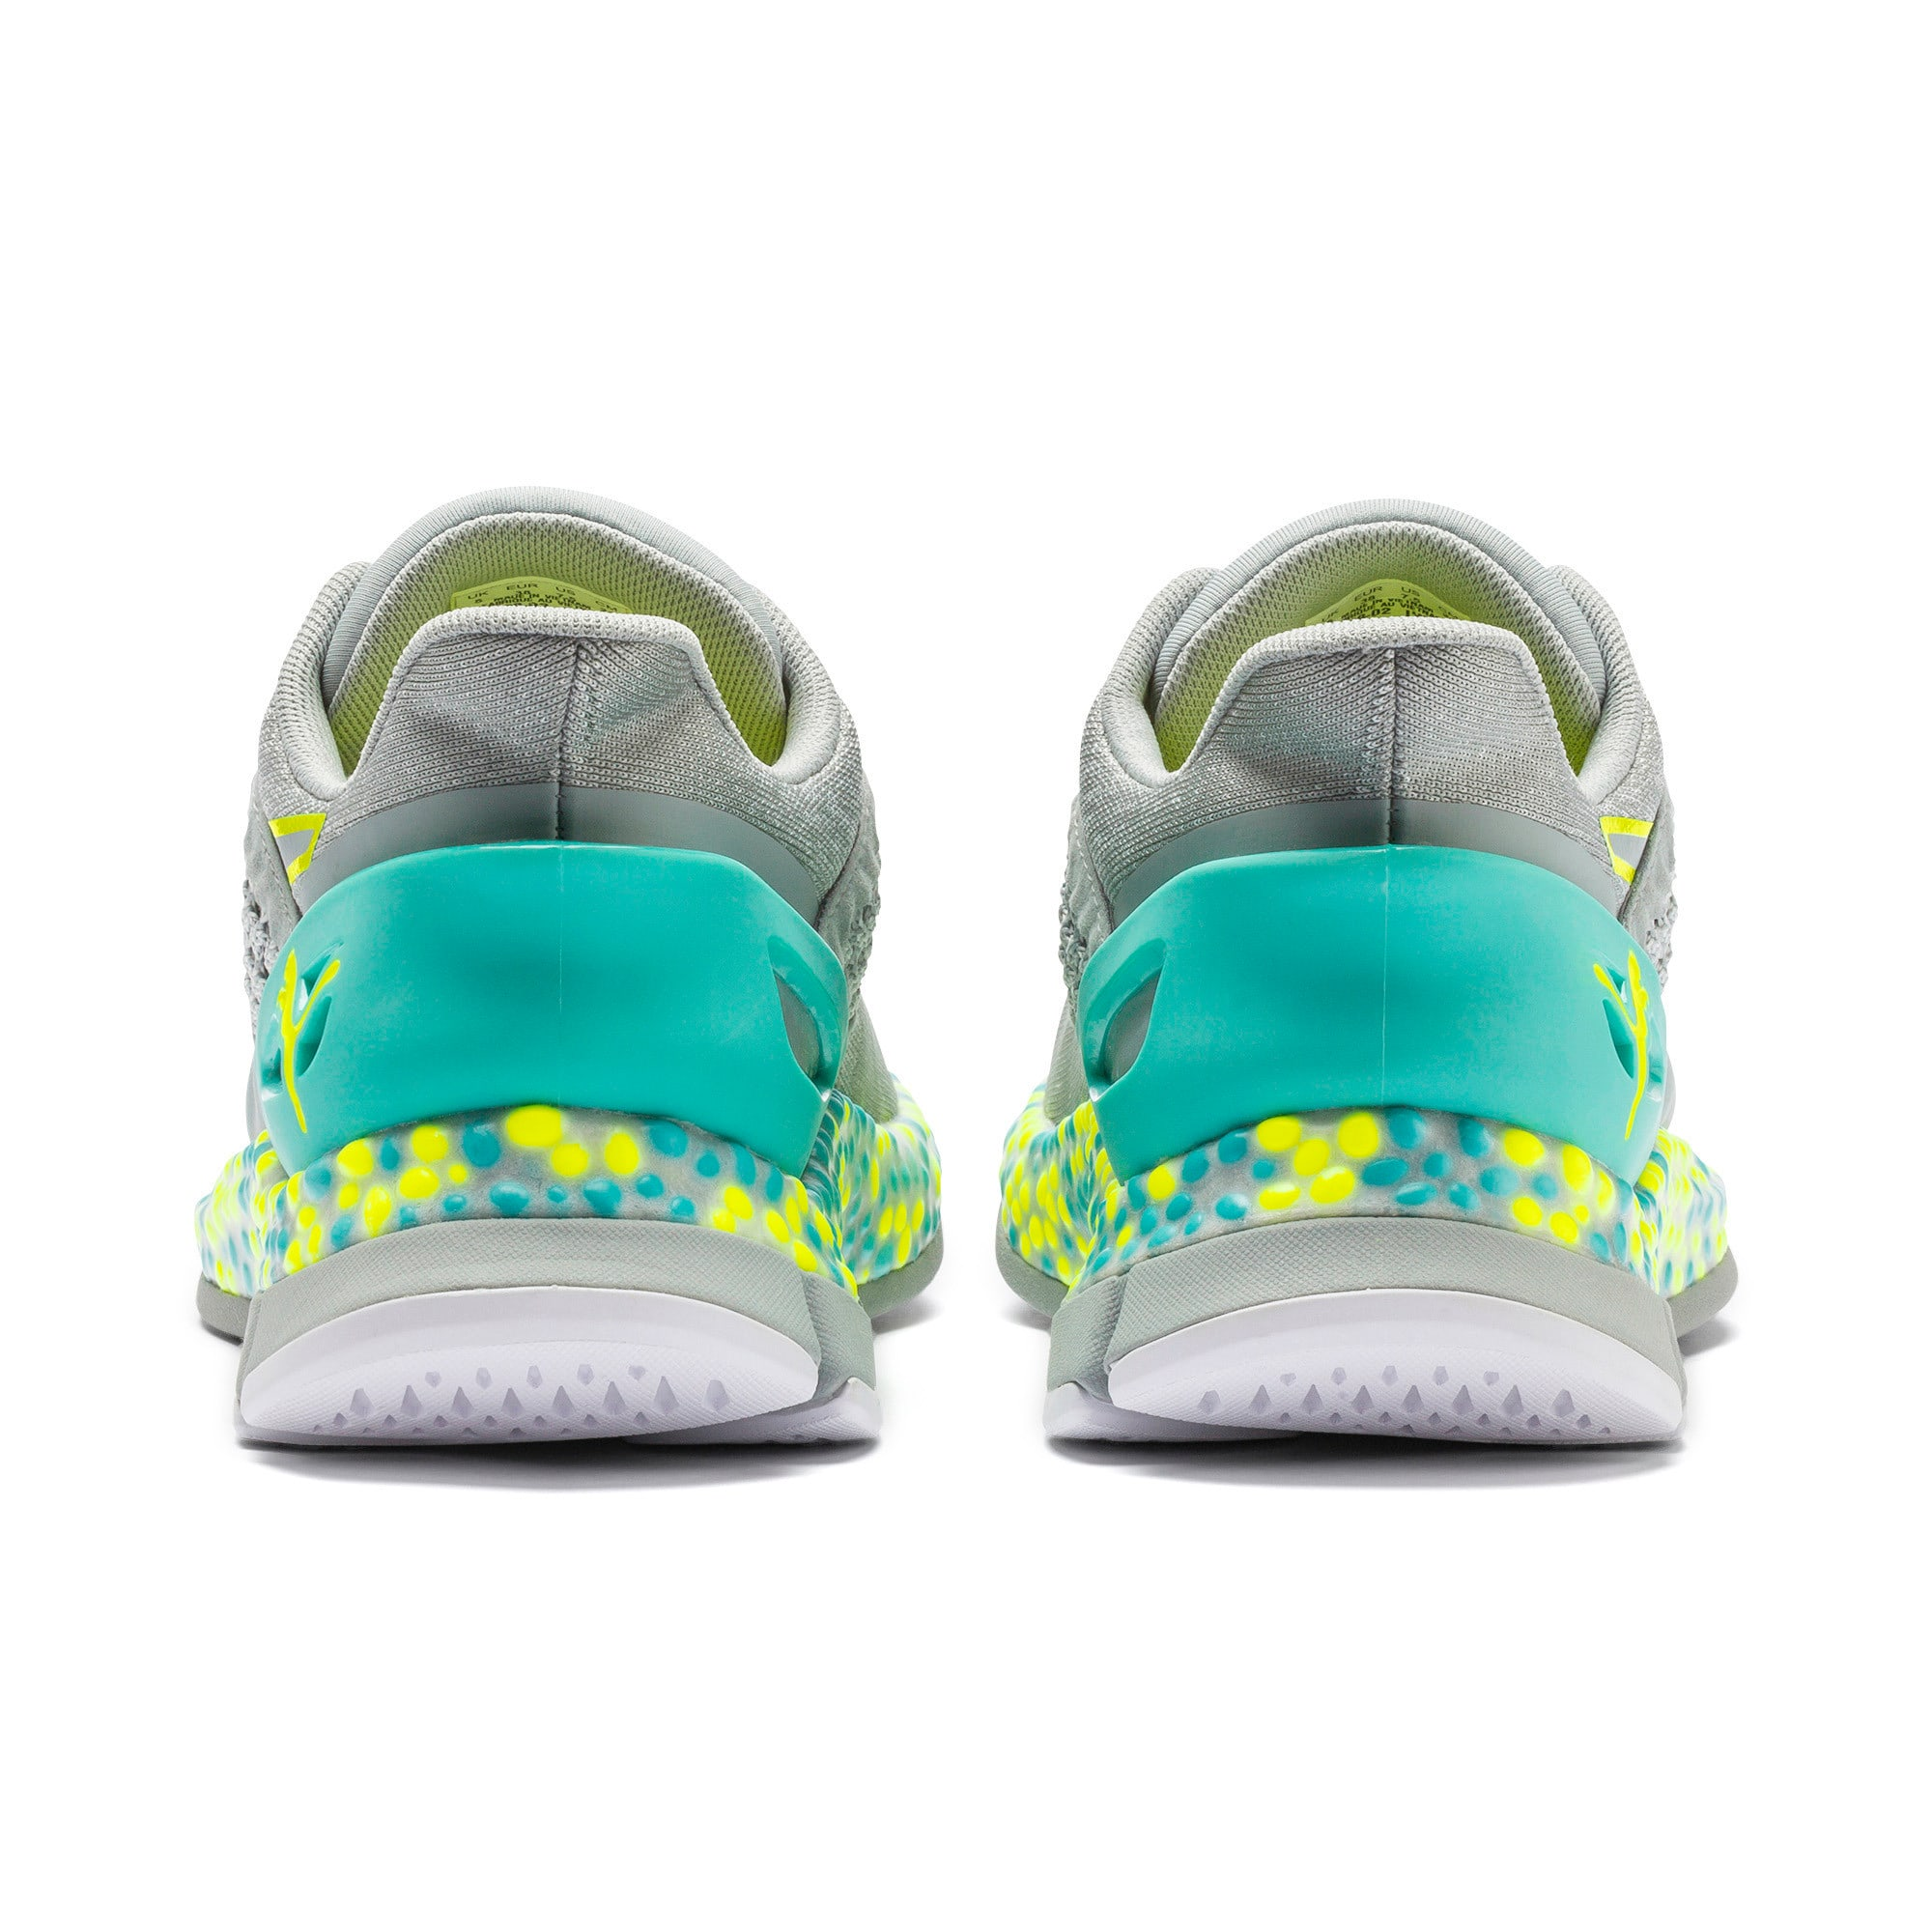 Scarpe Running HYBRID NETFIT Astro donna, Quarry-Yellow Alert, large